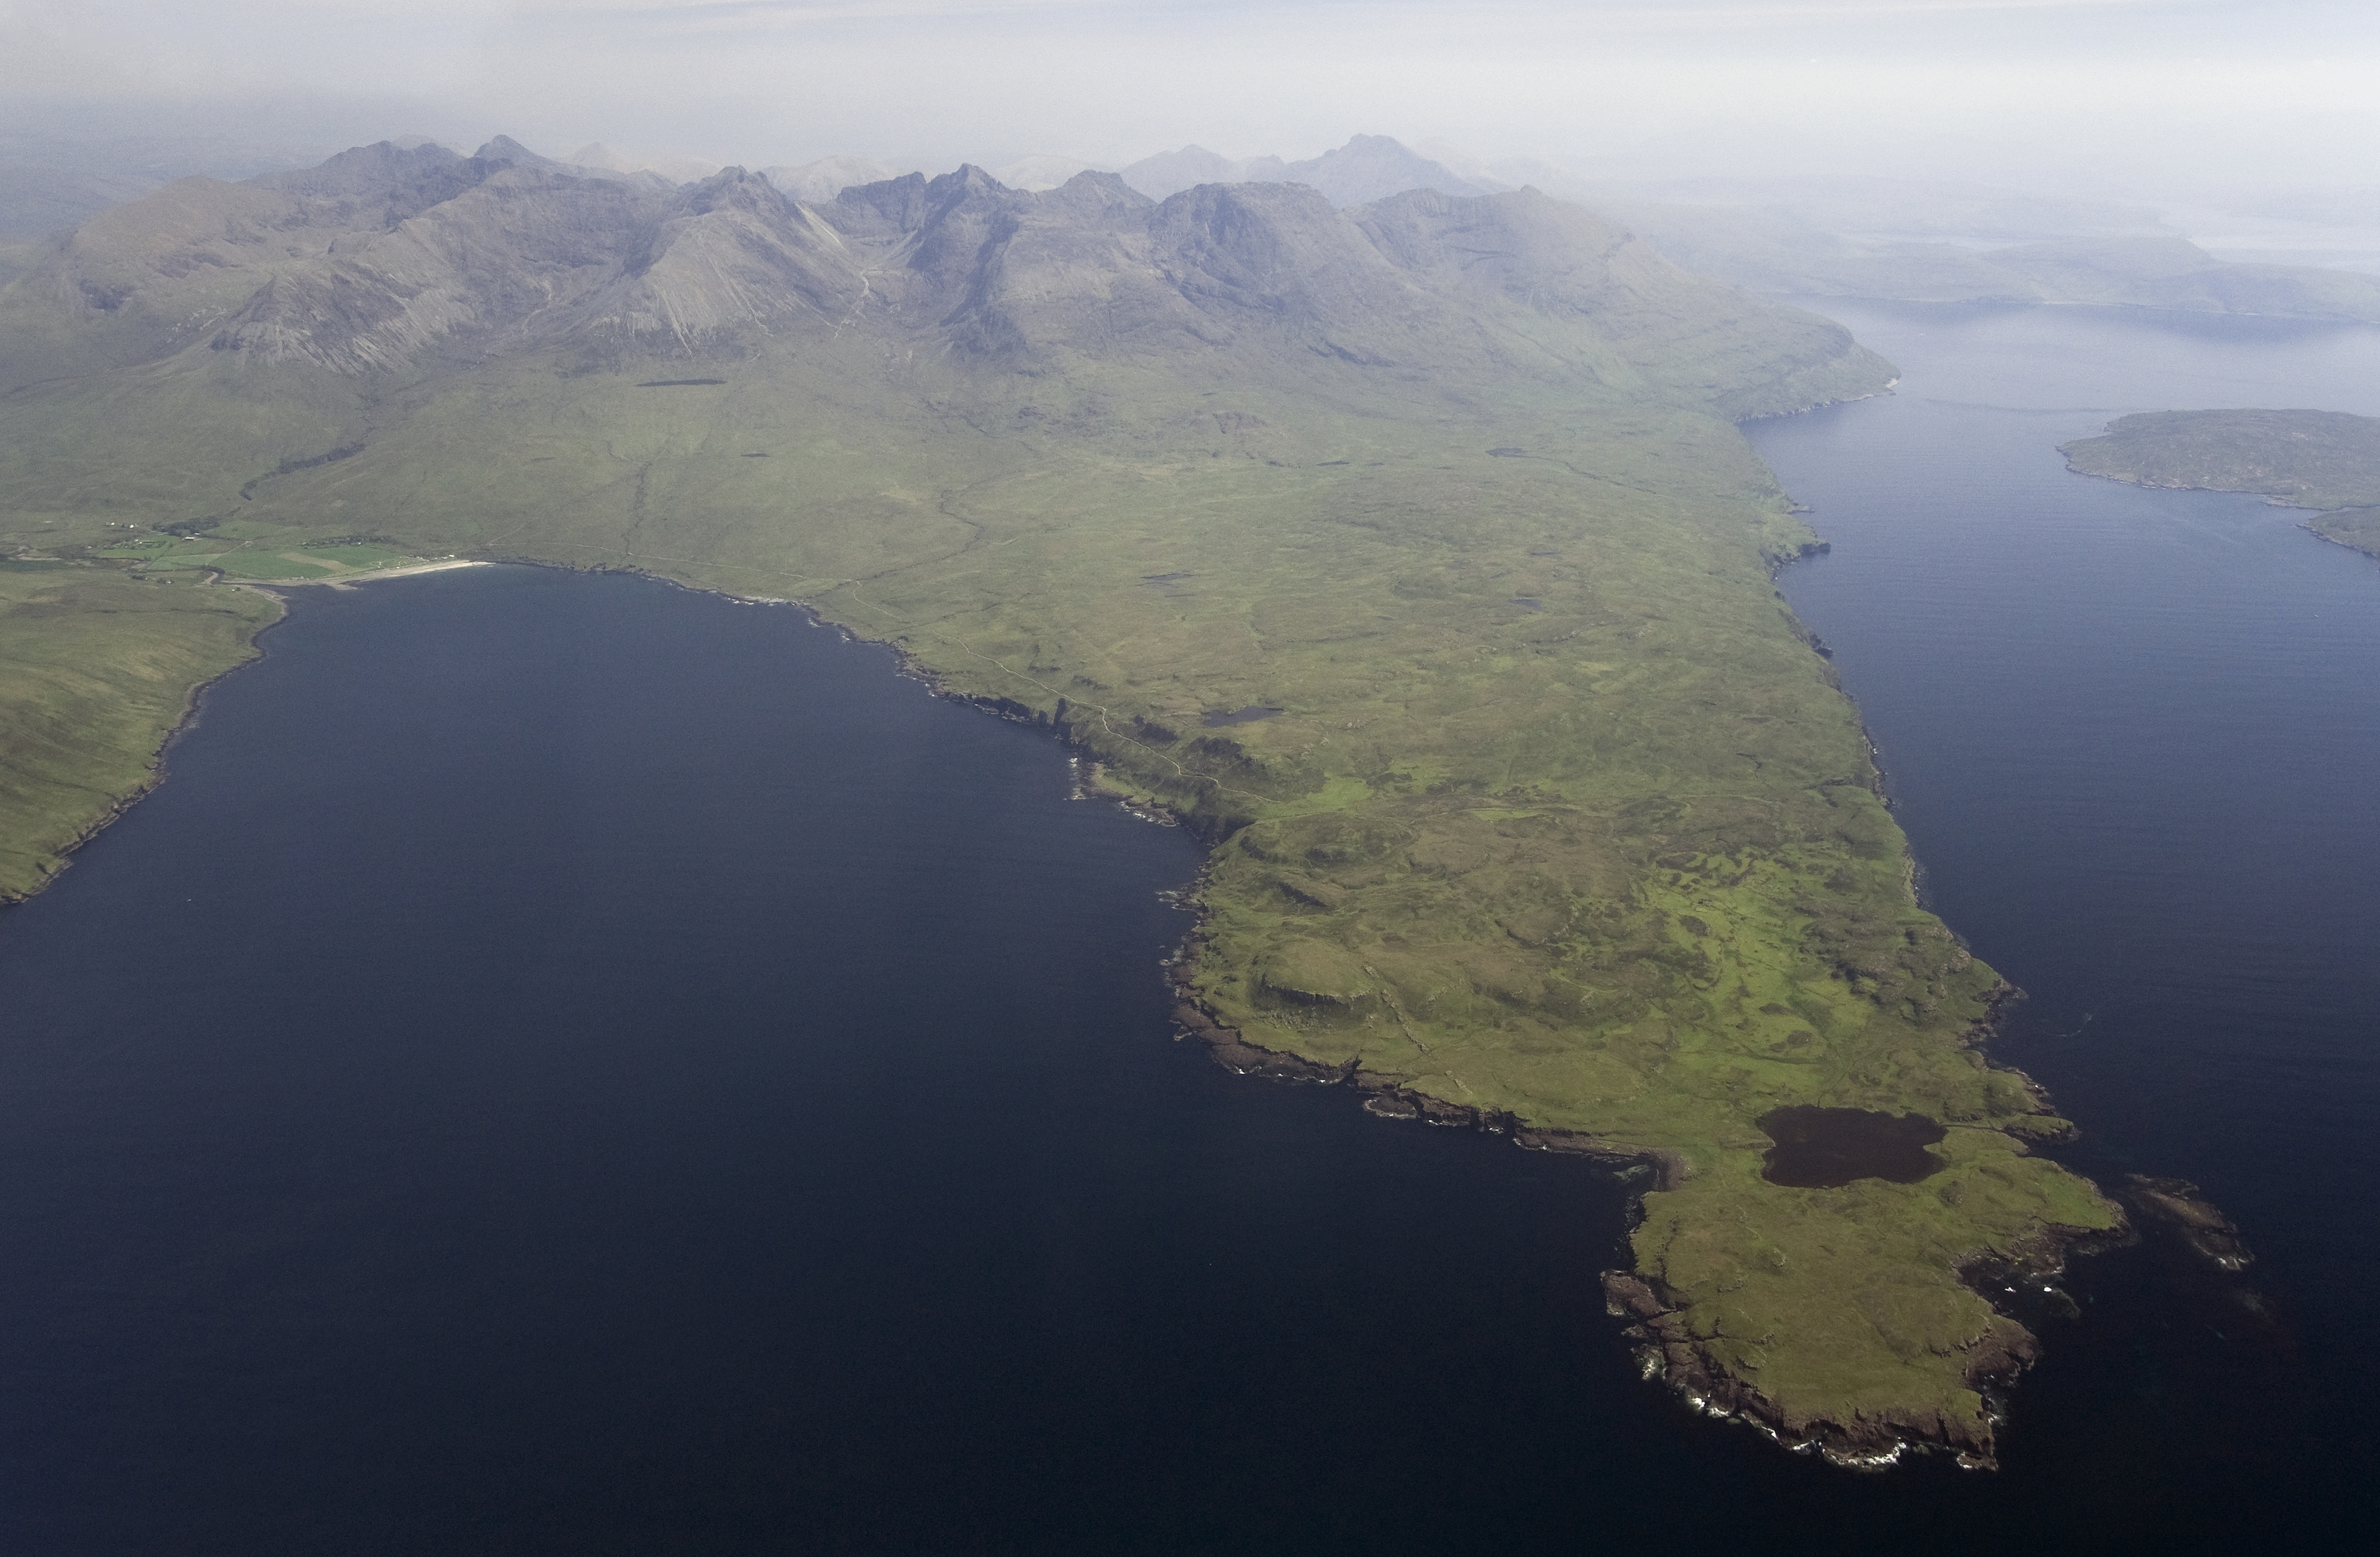 Rubh' an Dunain peninsula, Isle of Skye, showing at tip Clan MacAskill settlement and small loch connected to the sea by a man-made canal reputed to be of Viking origin.